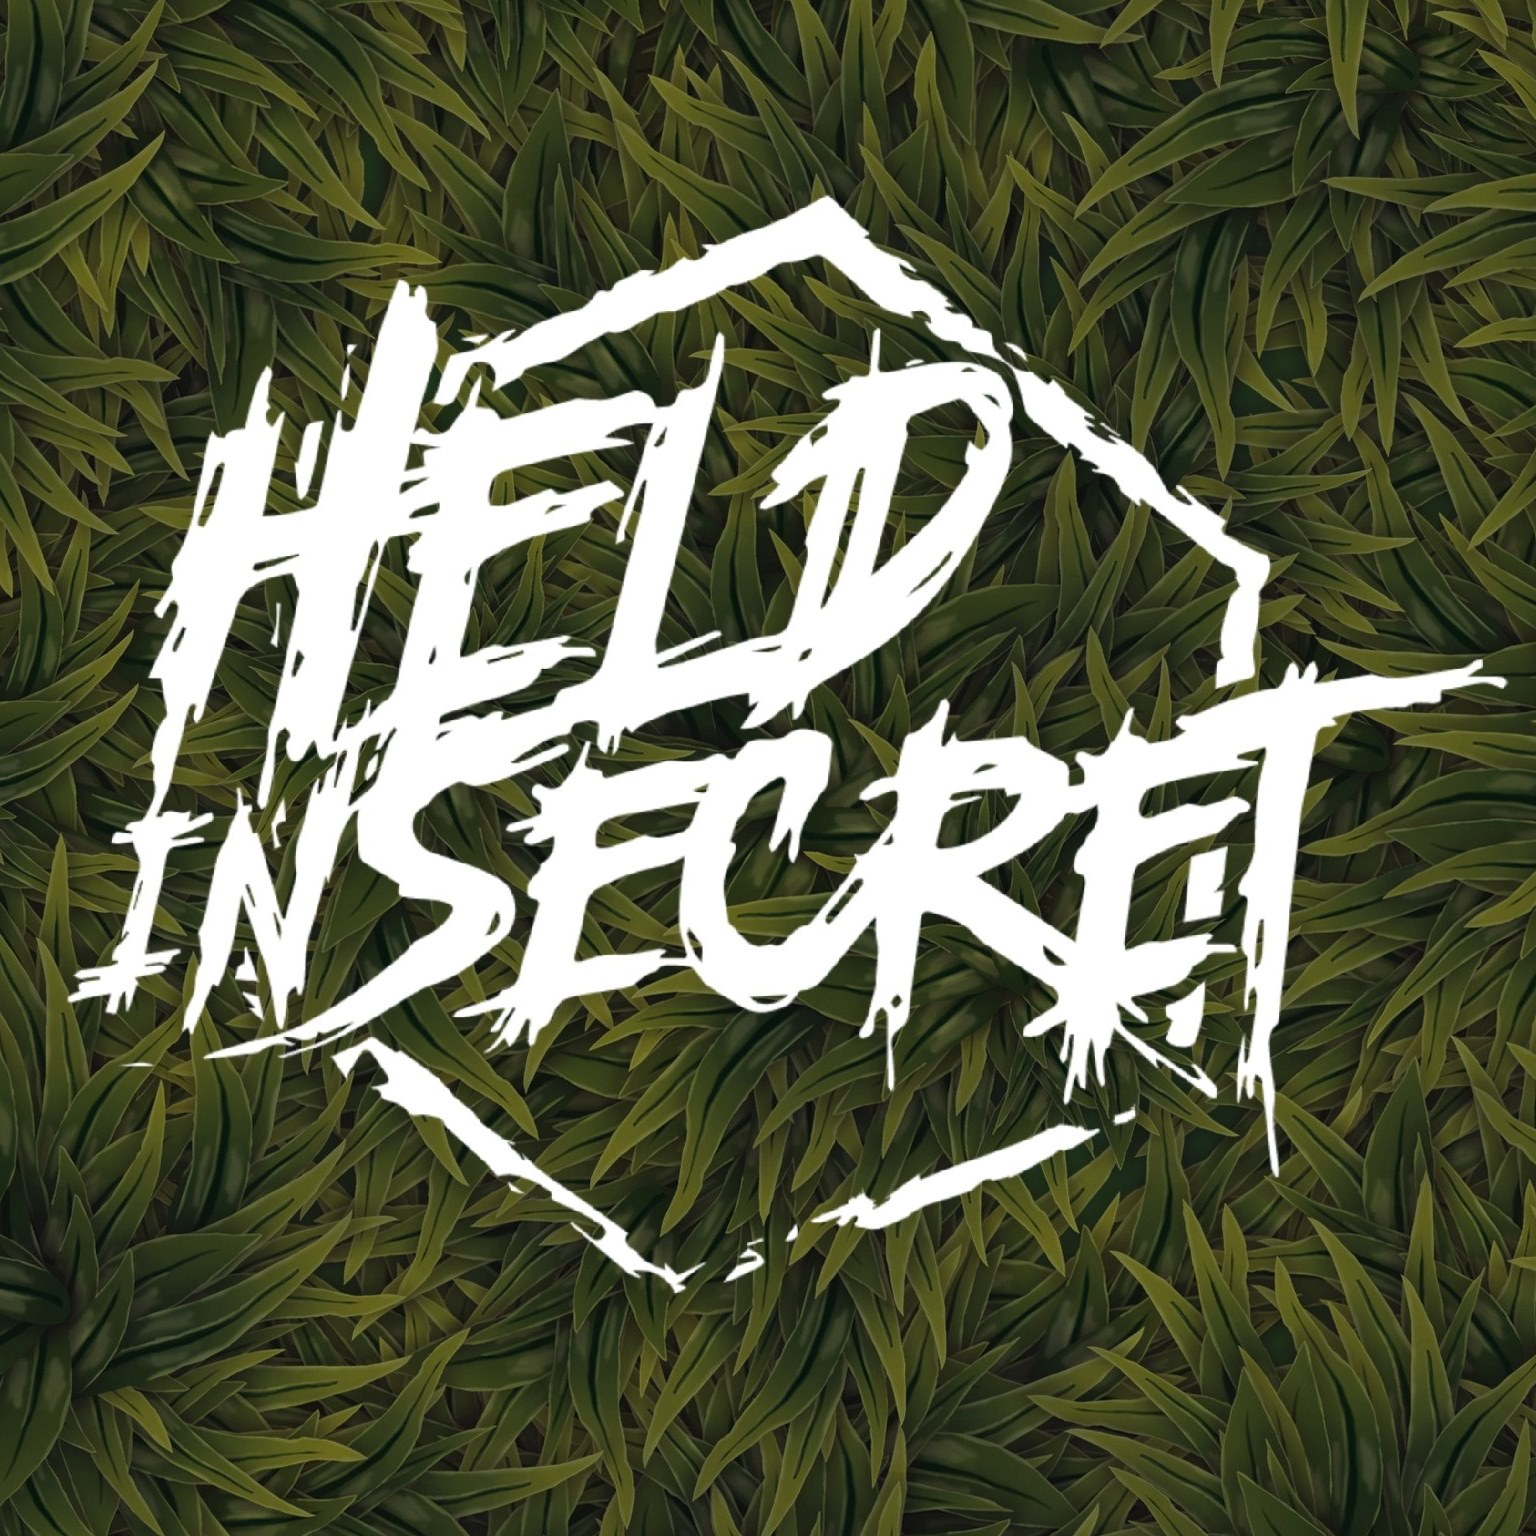 Held In Secret